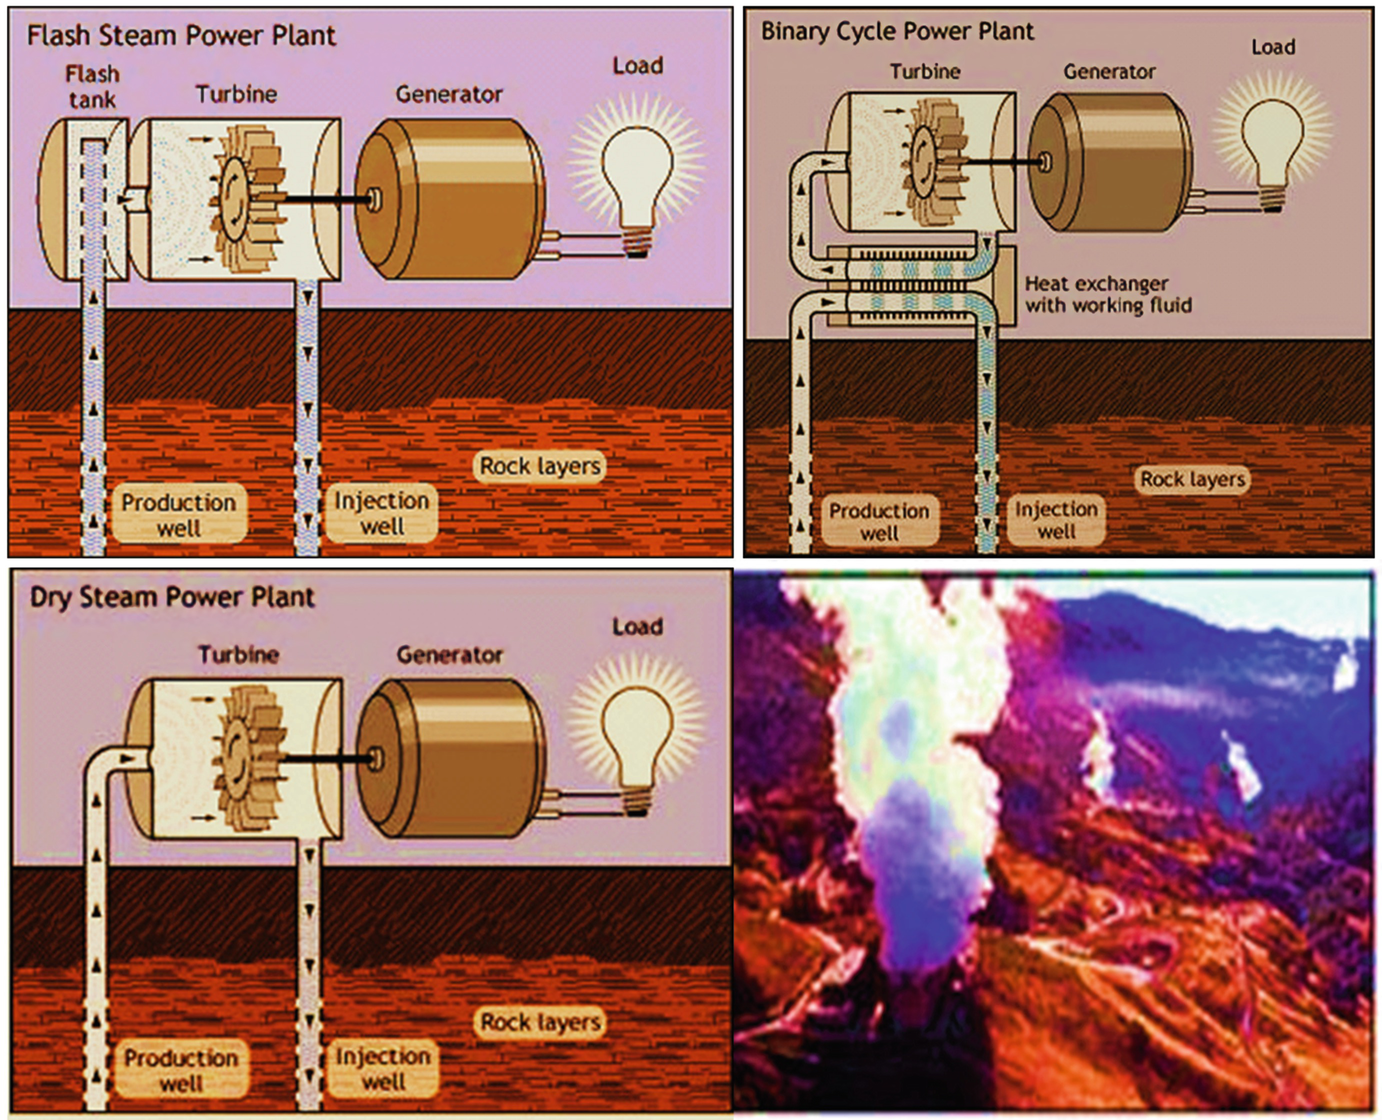 Advanced Materials Enable Renewable Geothermal Energy